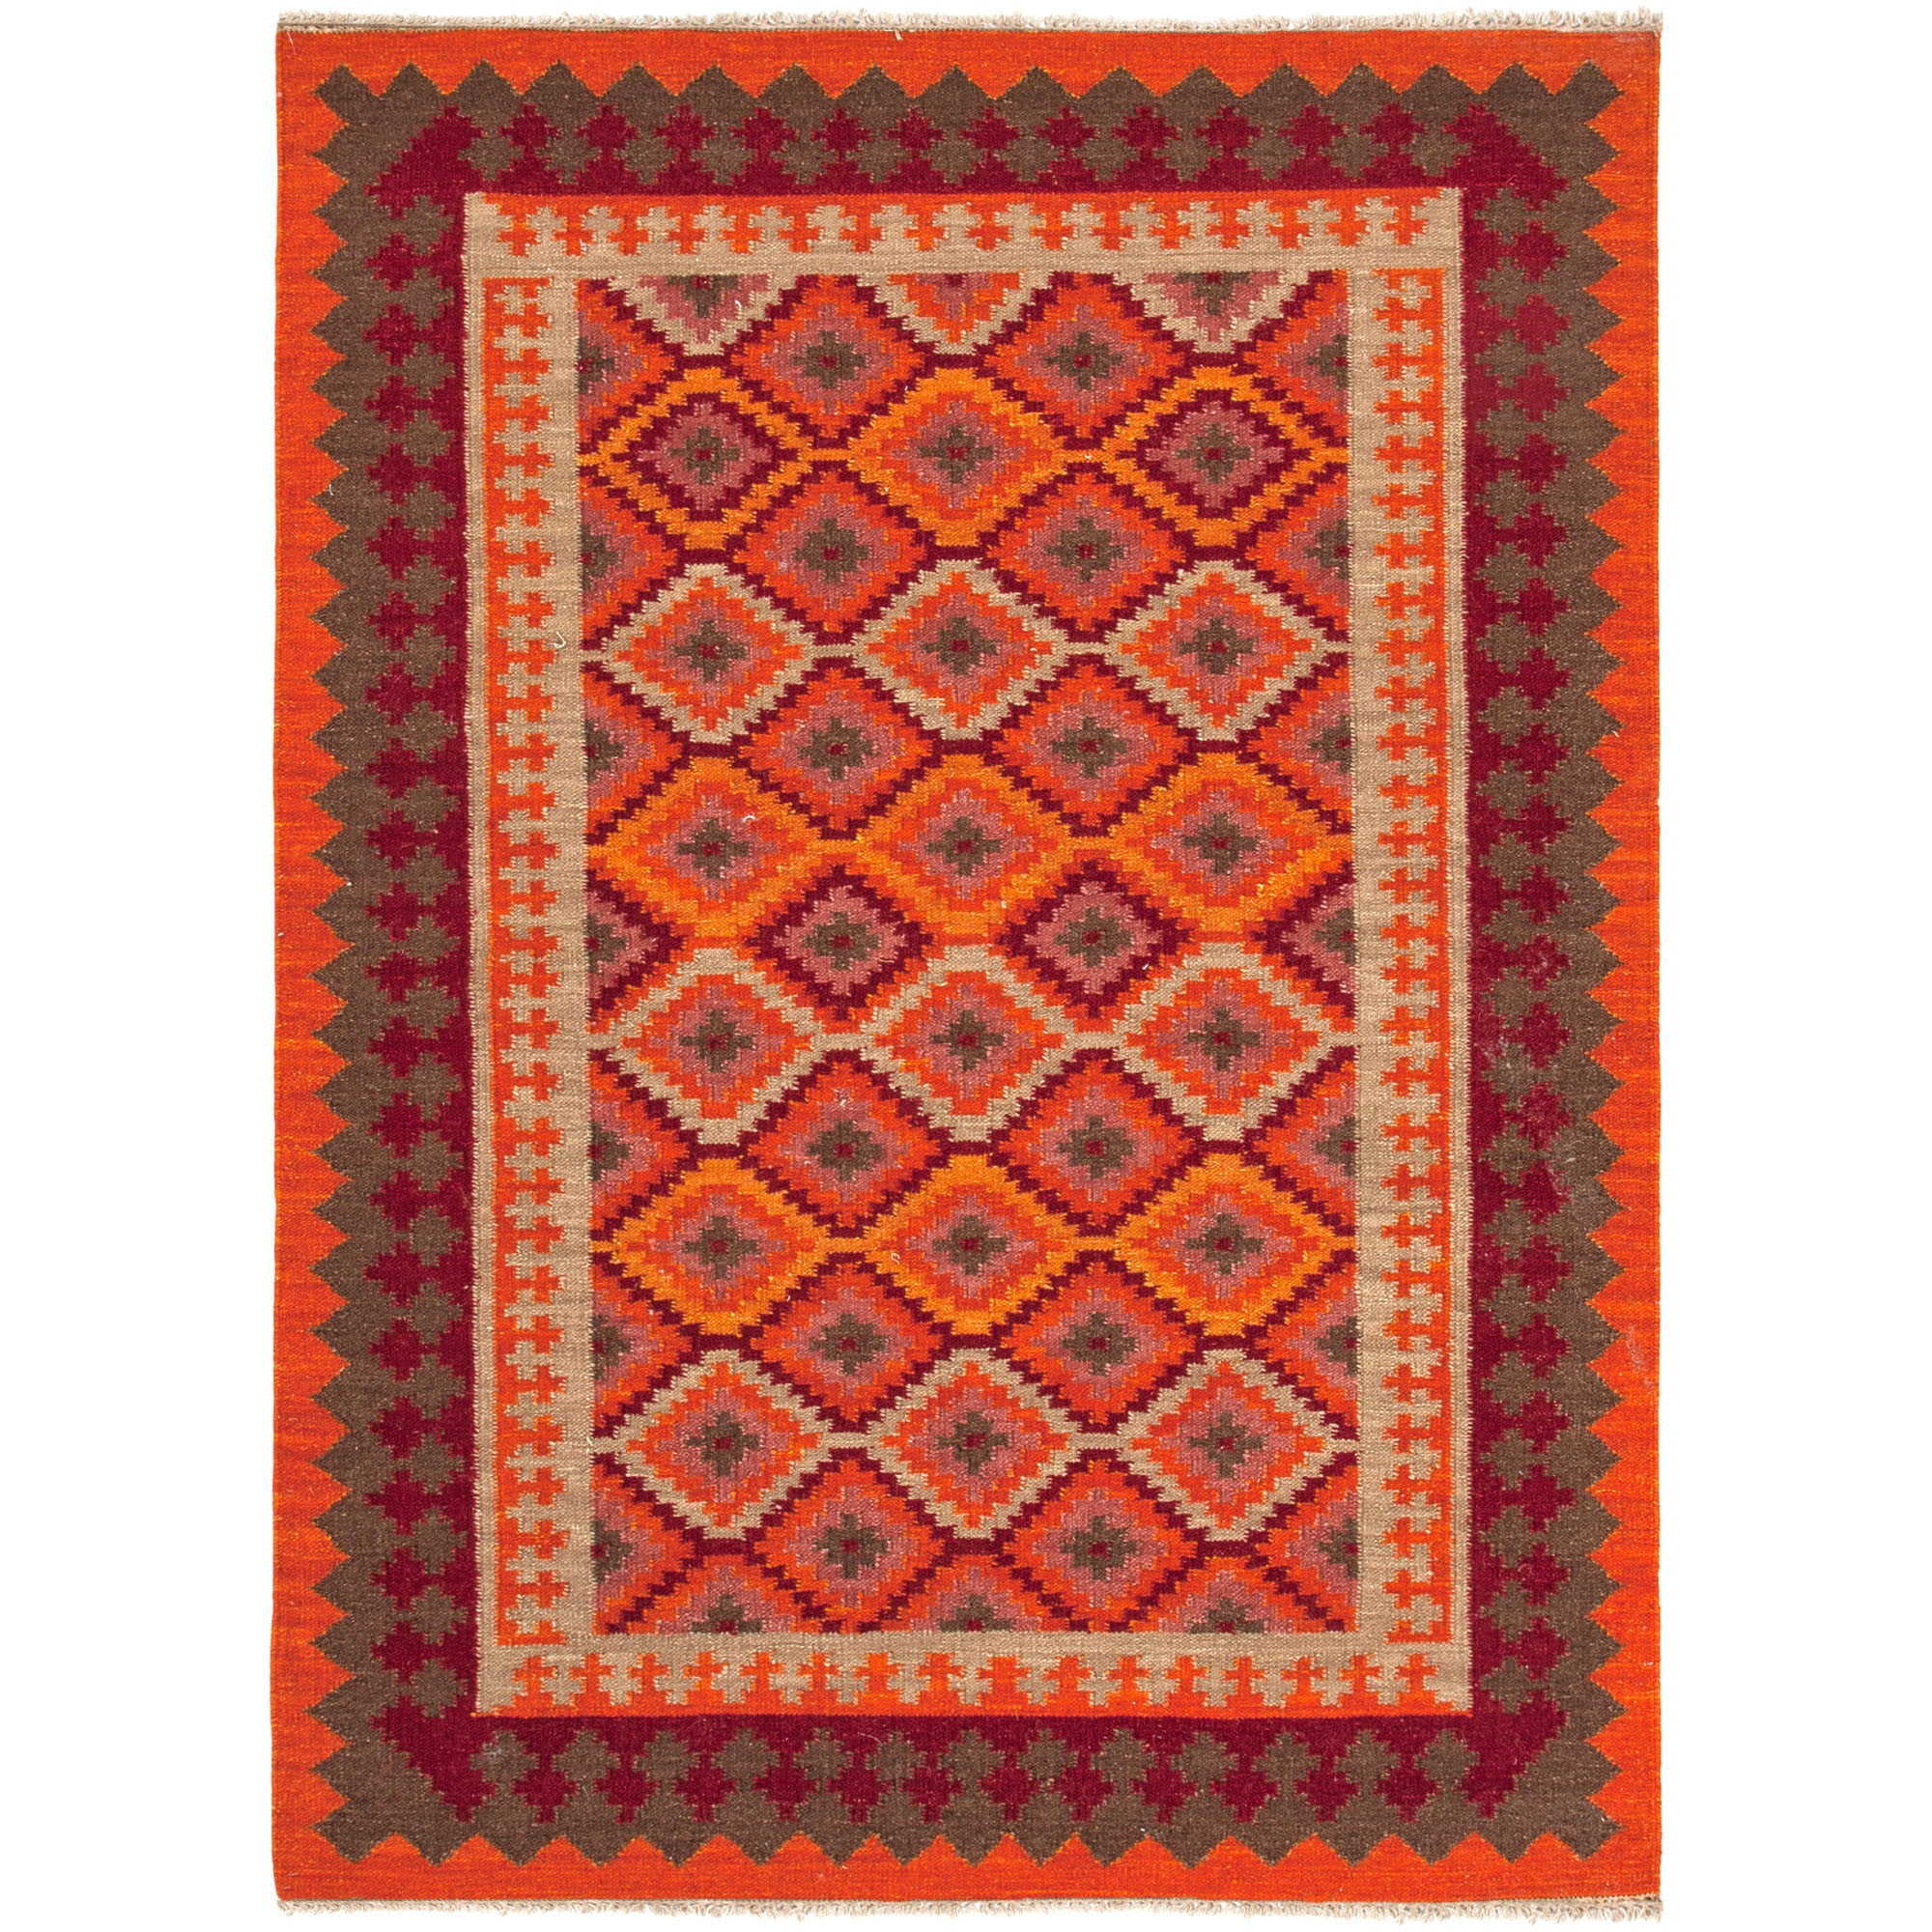 at shaggy direct orange rug file online buy rugs ow harmony